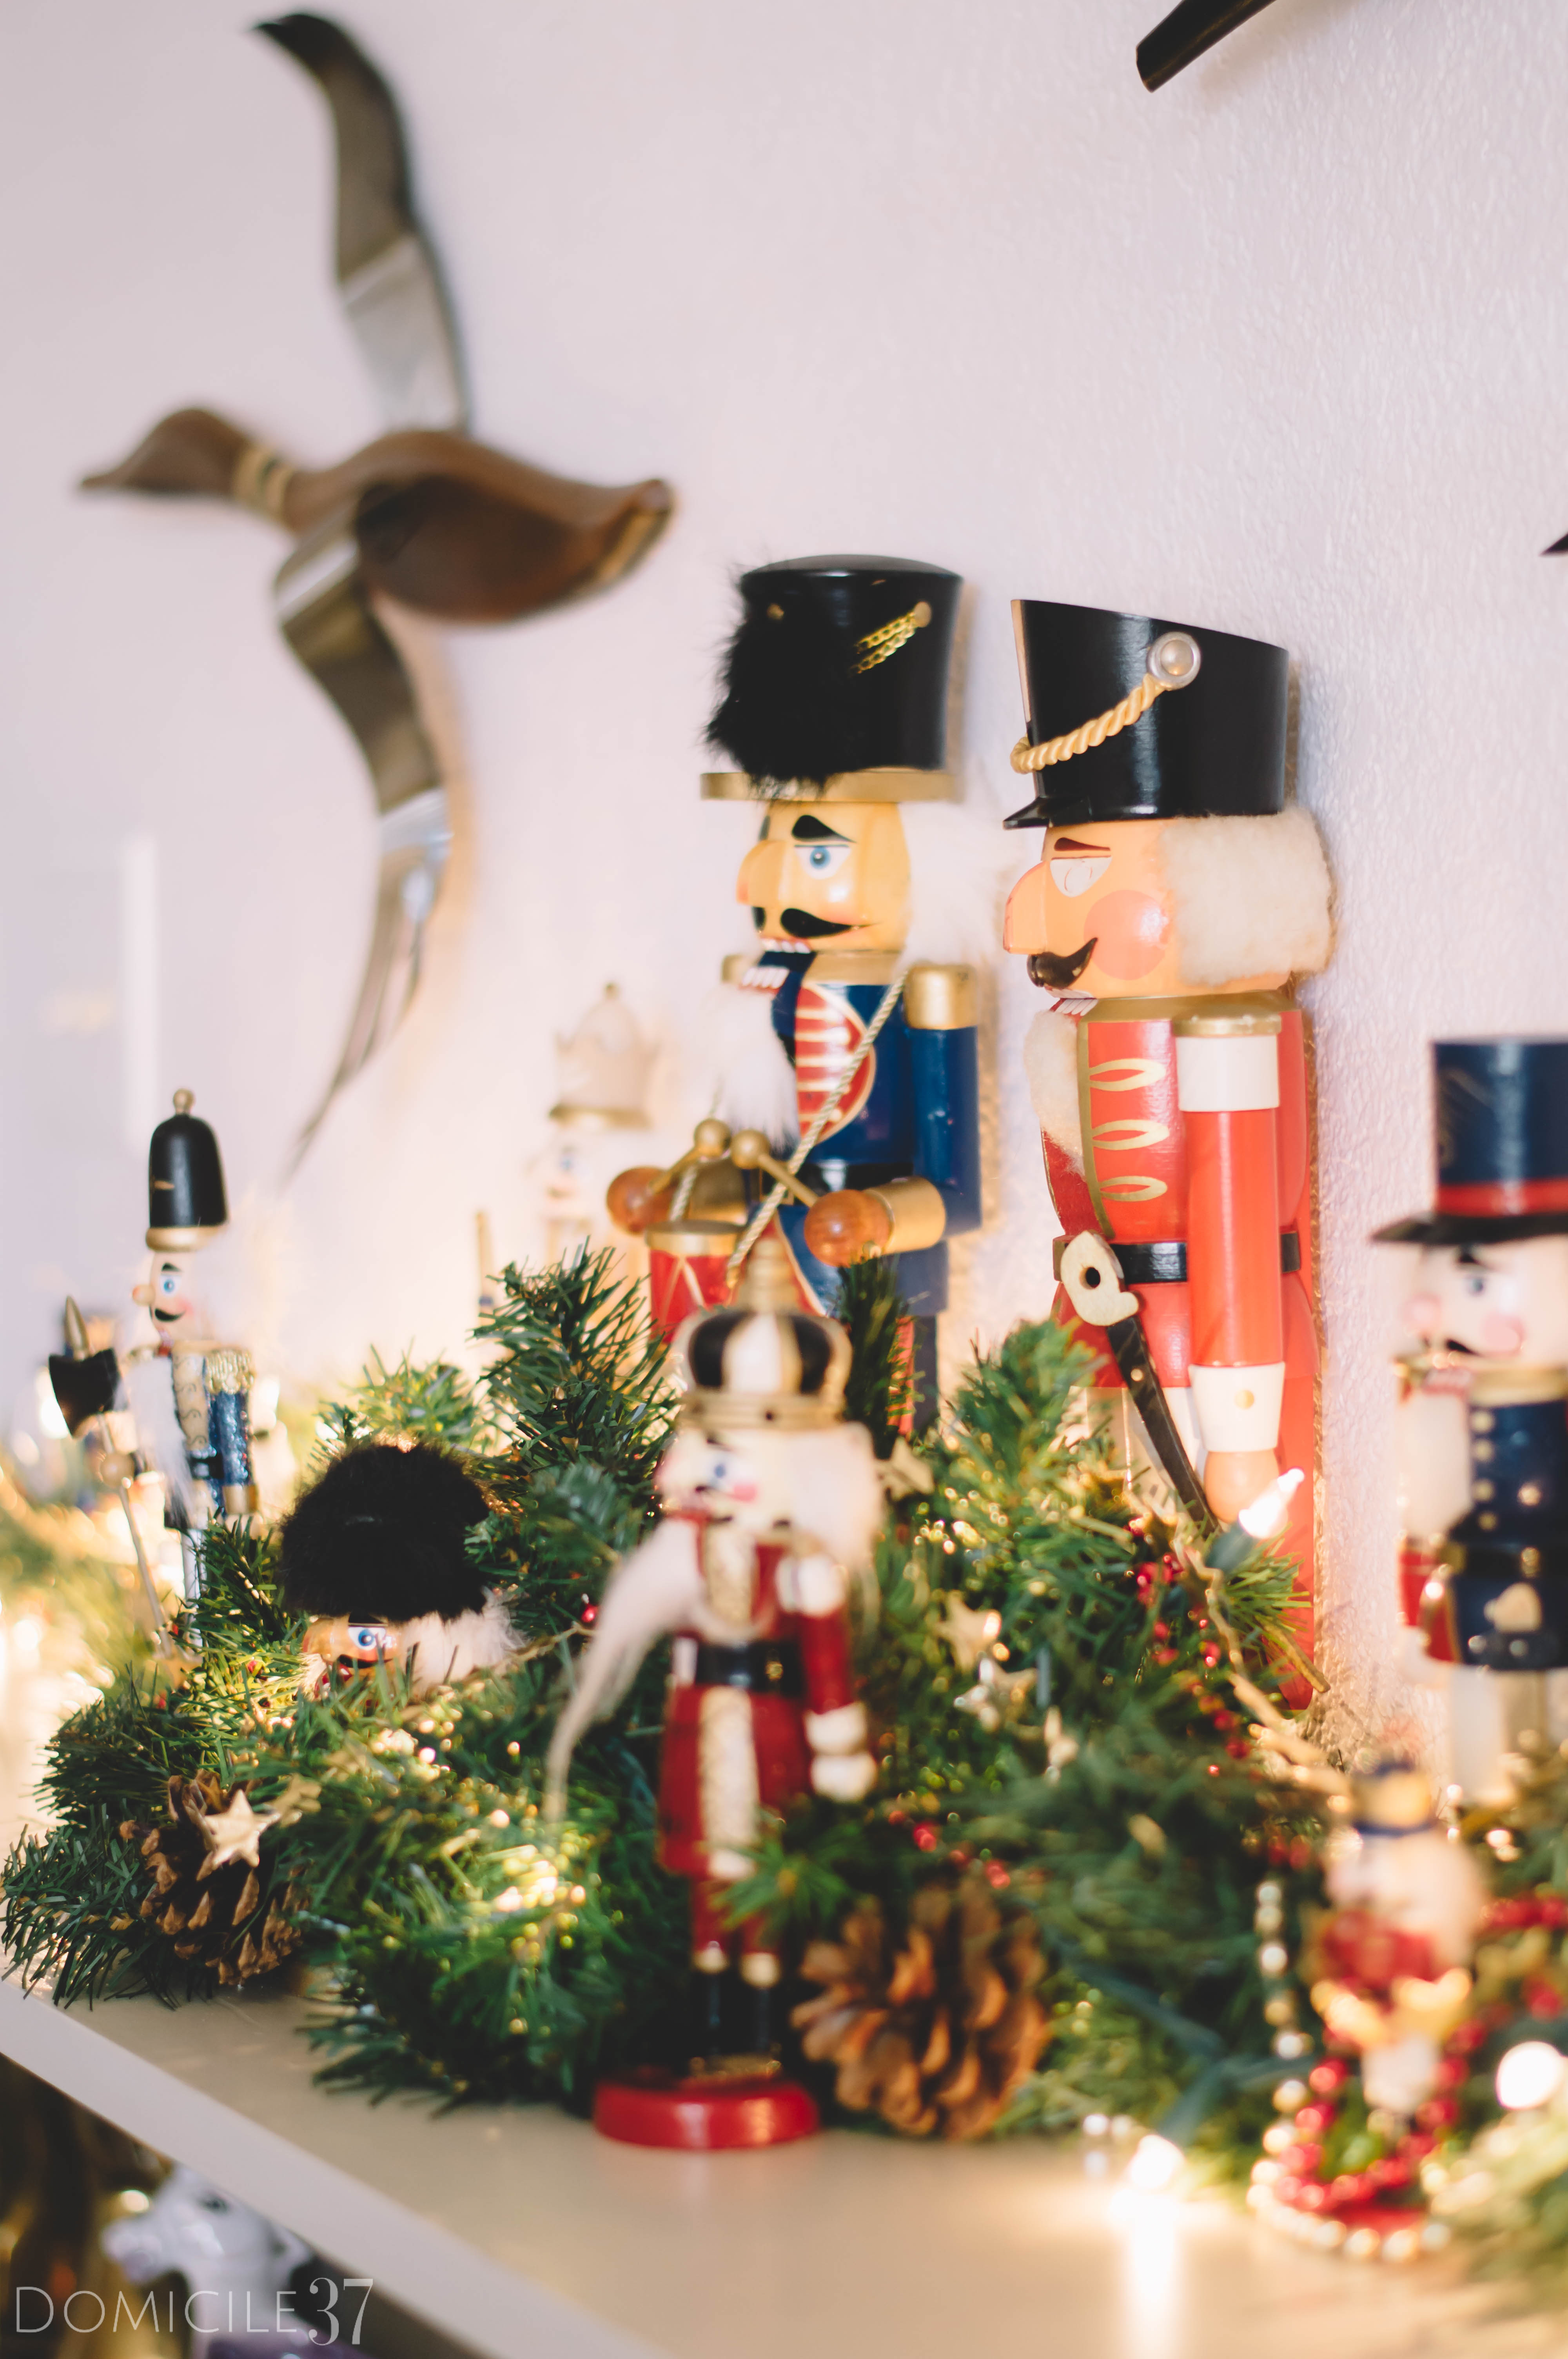 Domicile 37 | Holiday decor | Christmas Decor | Decorating bedroom Christmas | Vintage Christmas | Traditional Christmas decor | Nutcrackers